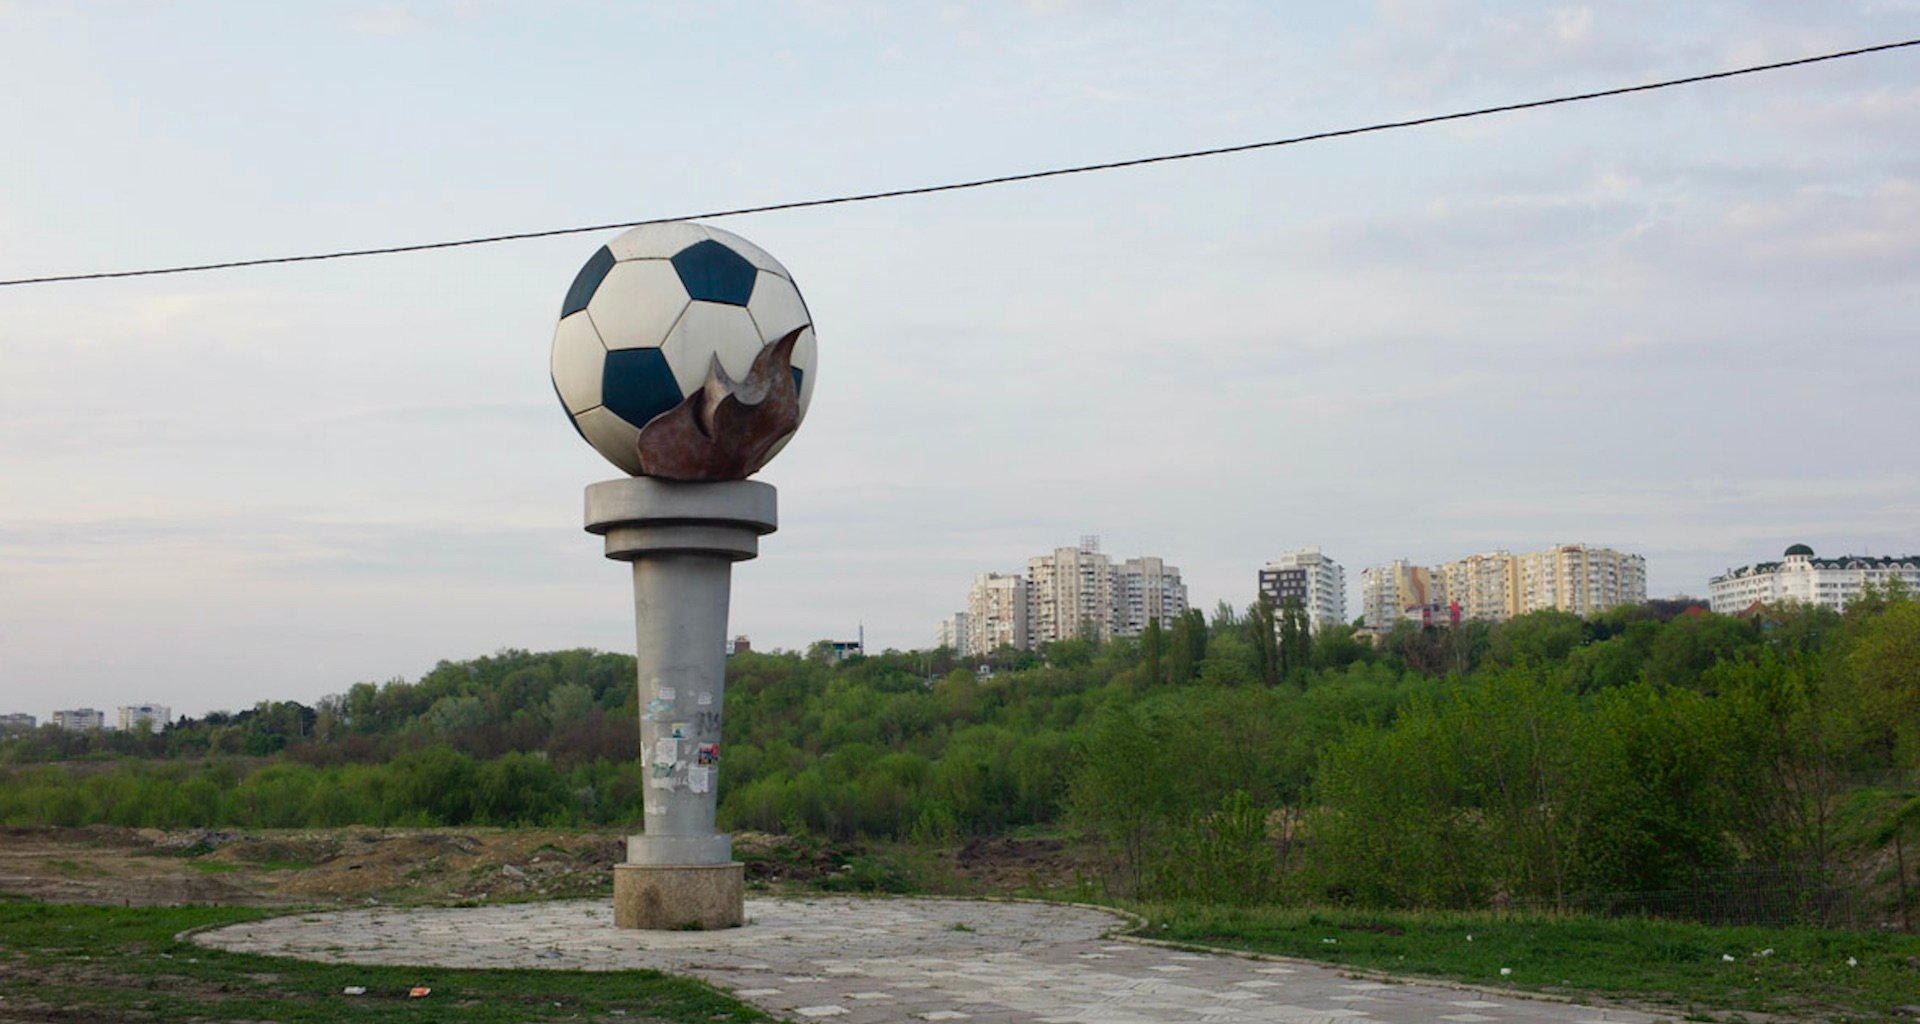 On the road with the football fans bridging Moldova's divided nation